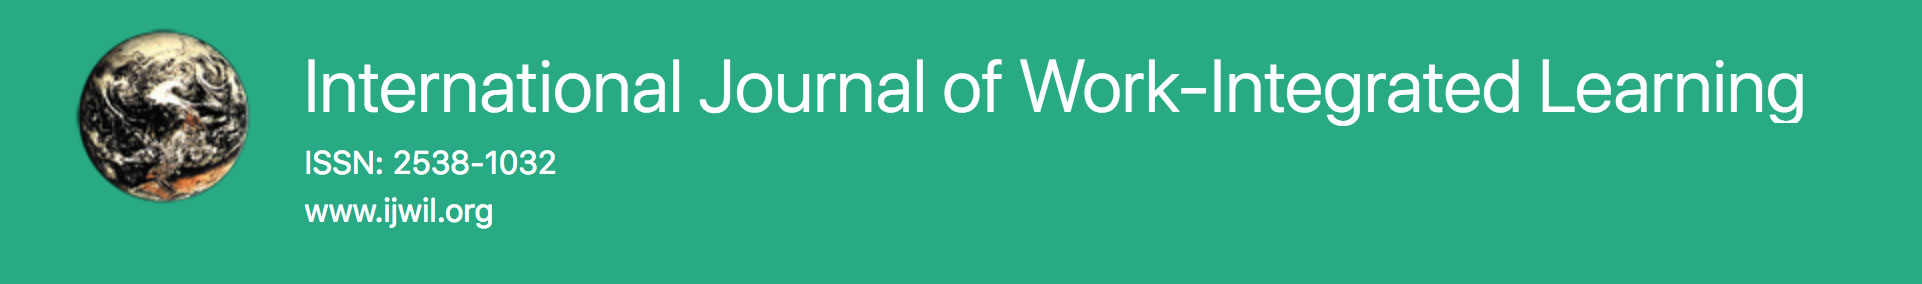 International Journal for Work-Integrated Learning